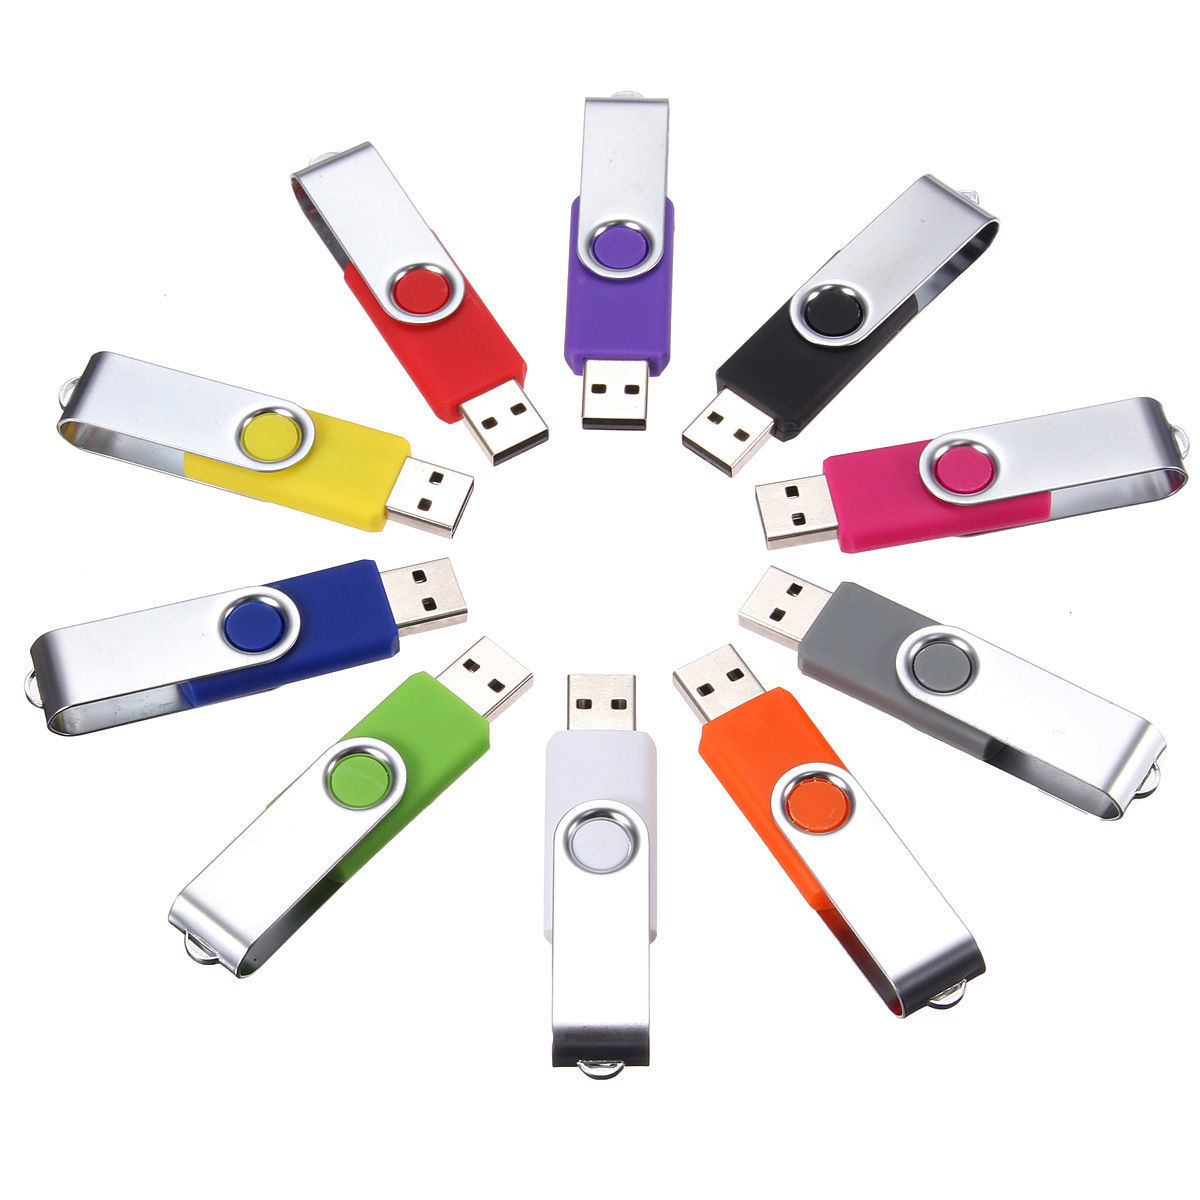 2g 4G 8g 16g 32g USB Flash Drive /Hard Disk